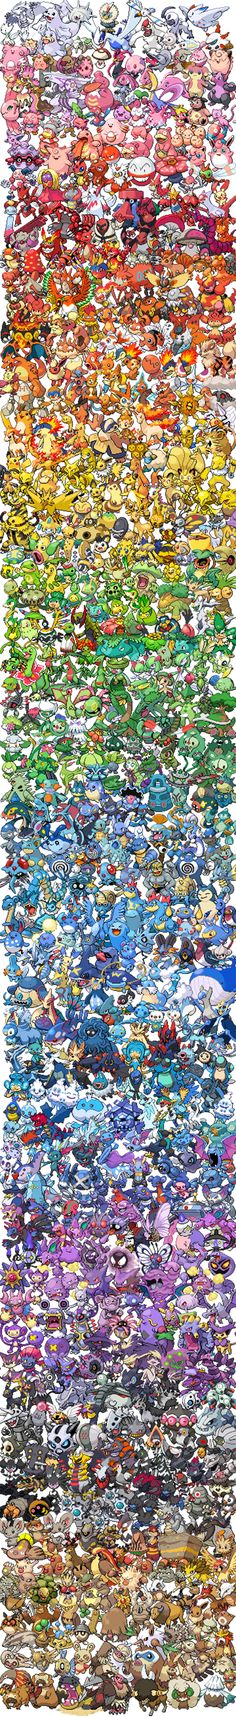 .Pokemon.